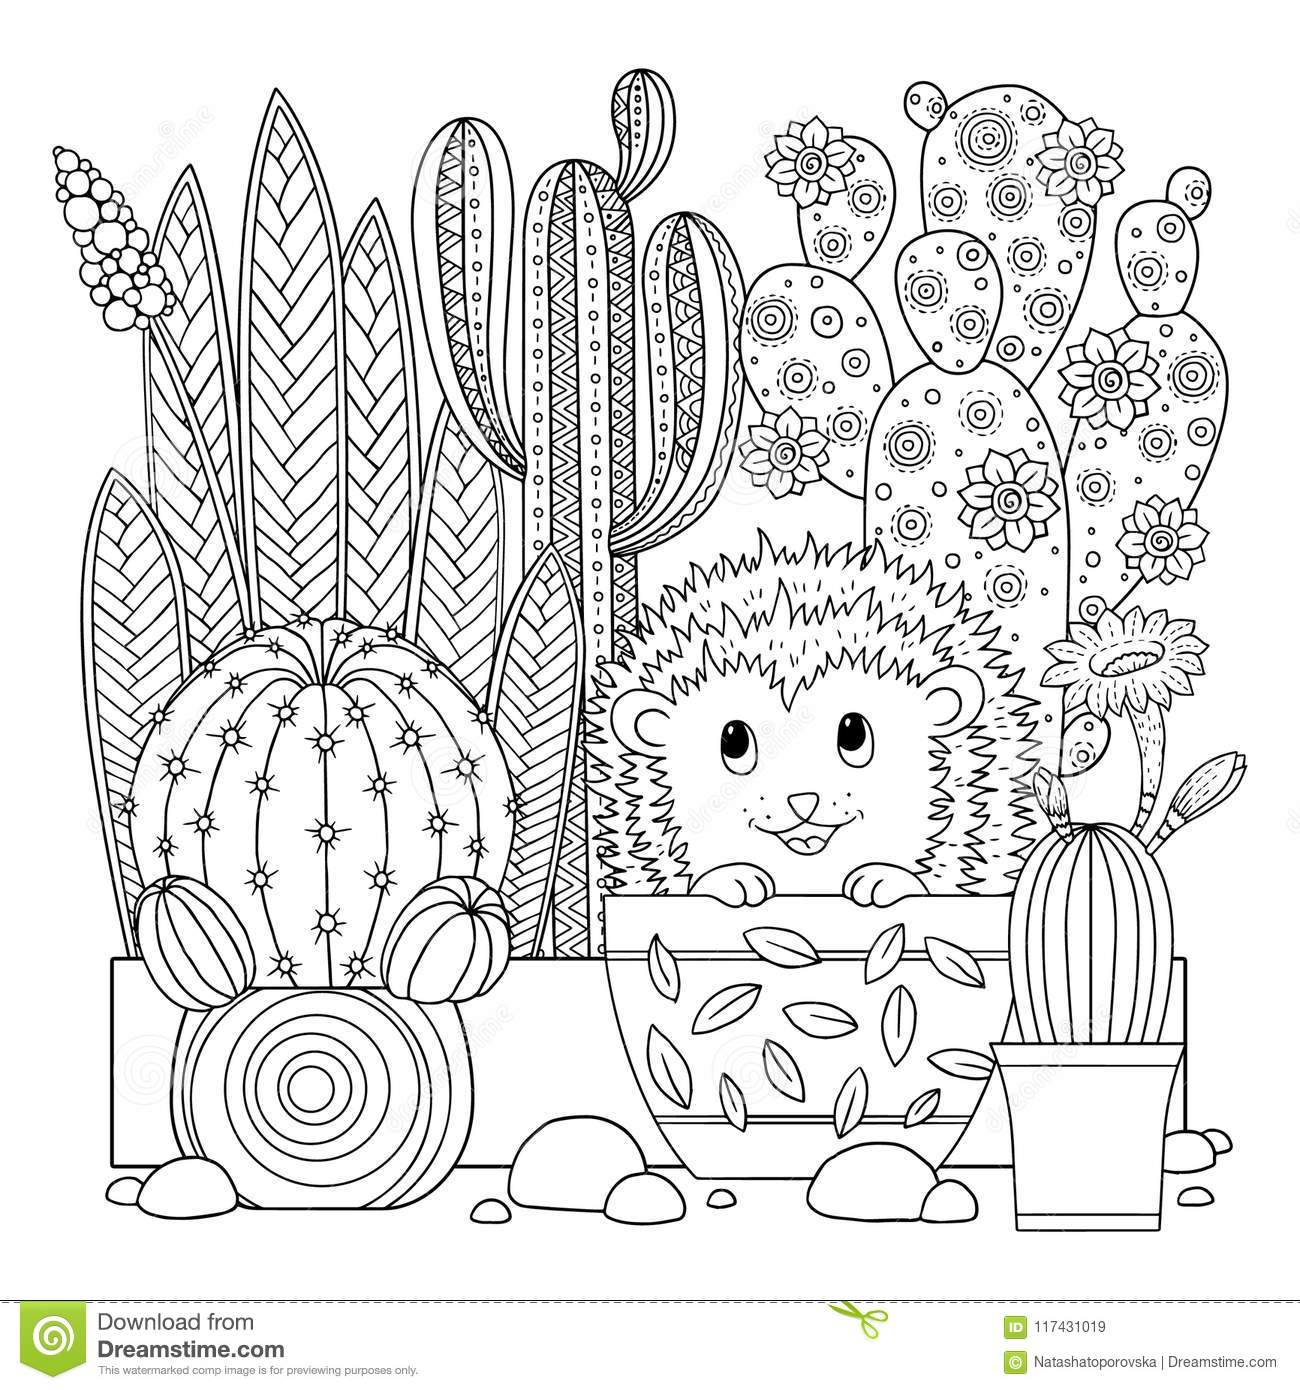 Vector Coloring Page Linear Image On White Background